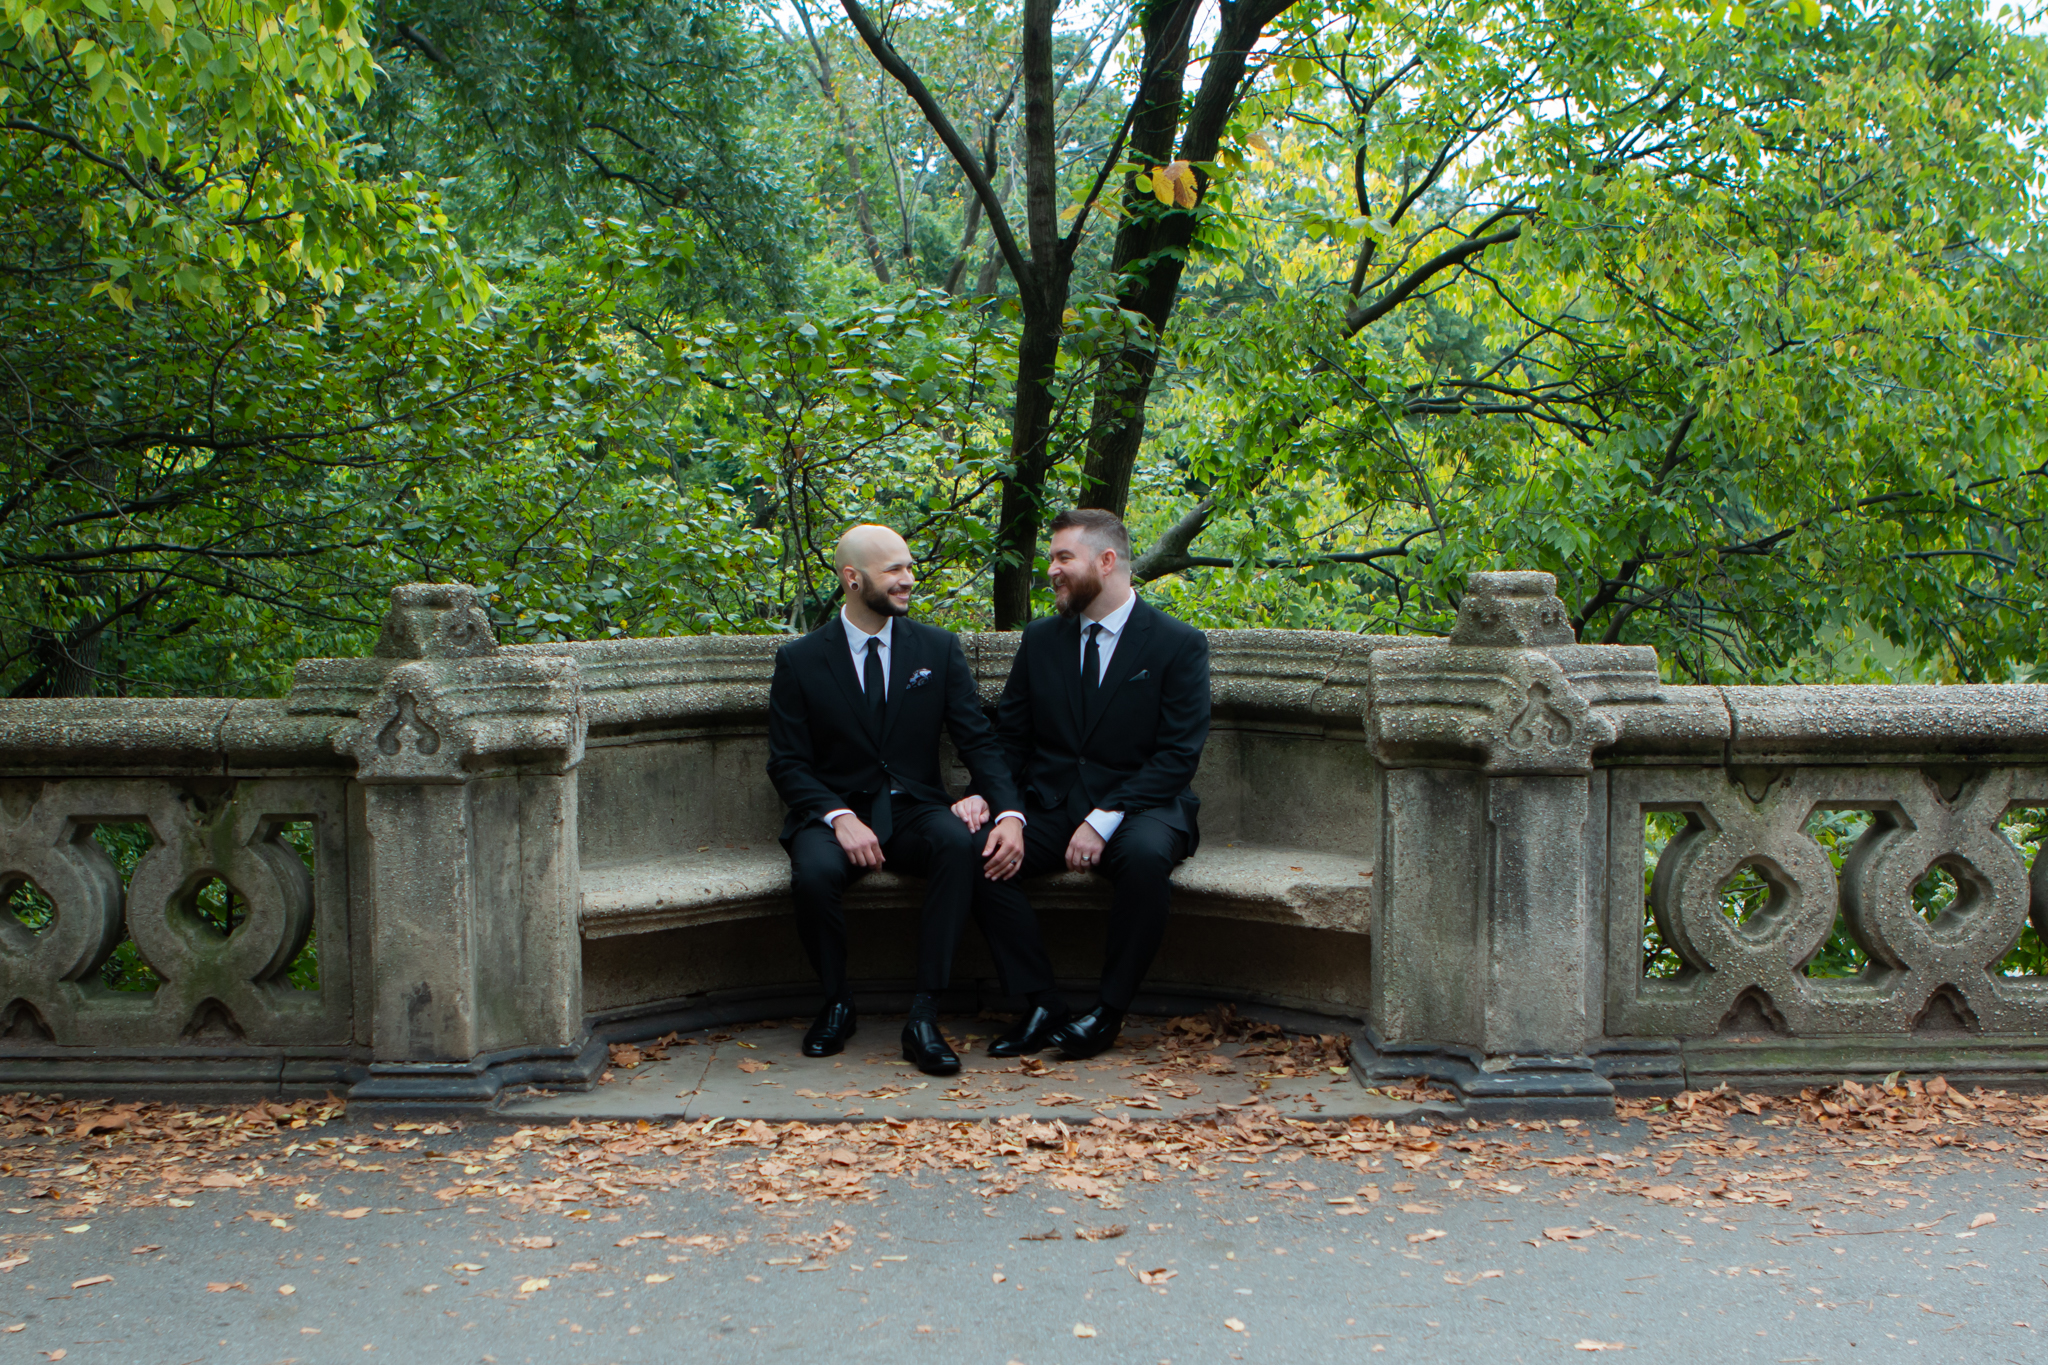 Kate-Alison-Photography-Central-Park-Elopement-Robert-Michael-100618-78.jpg